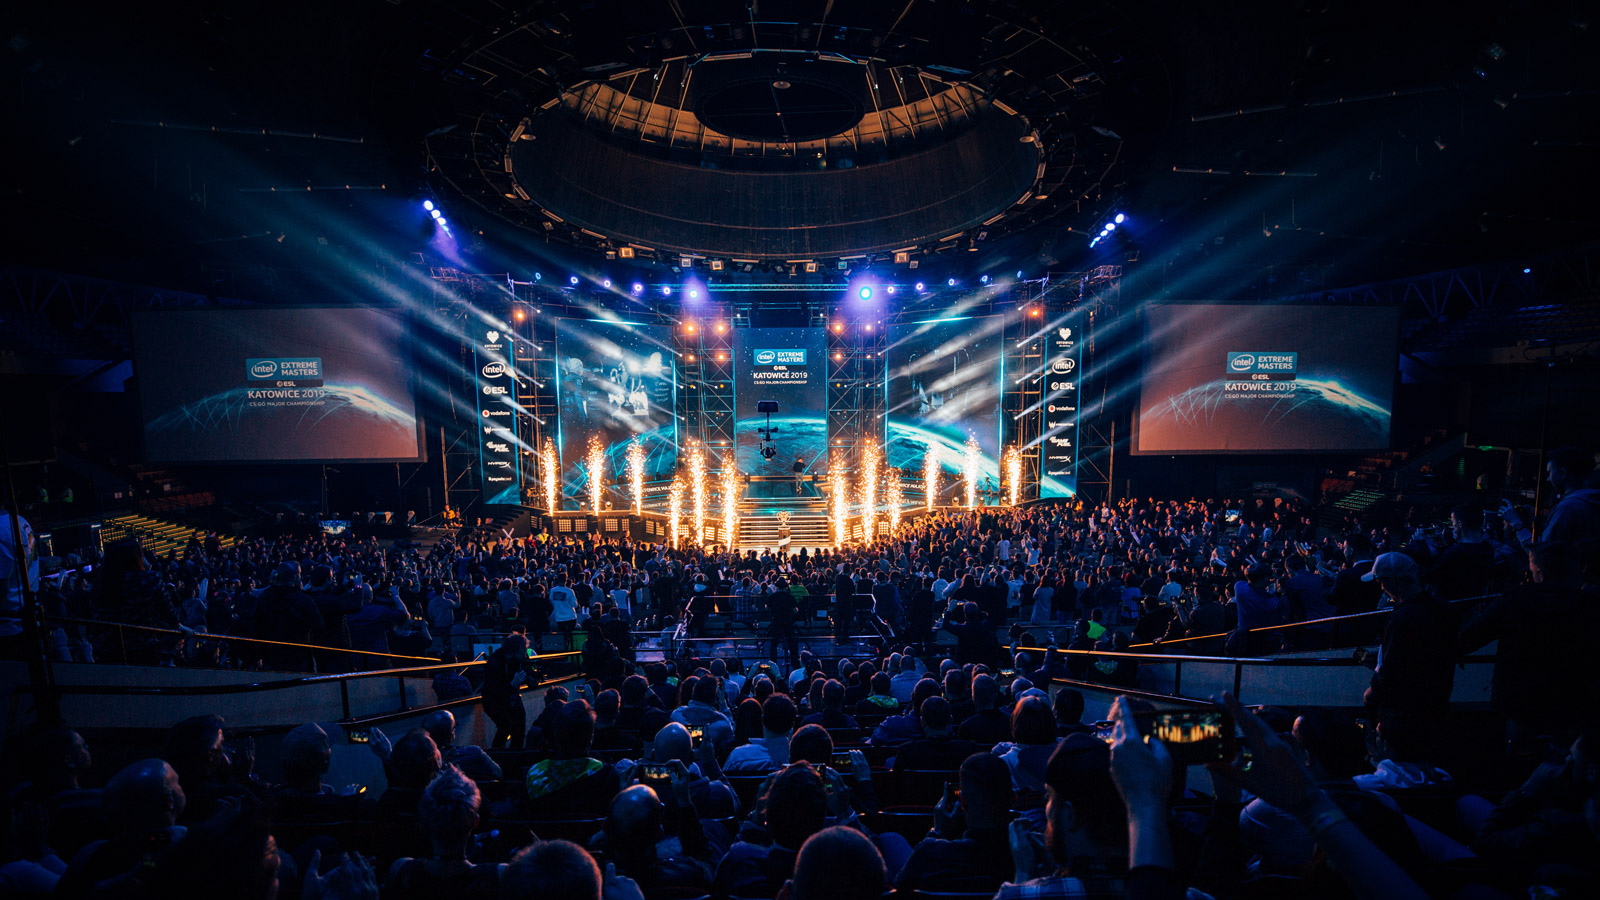 Die Intel Extreme Masters 2019 Major Championchip in Katowice